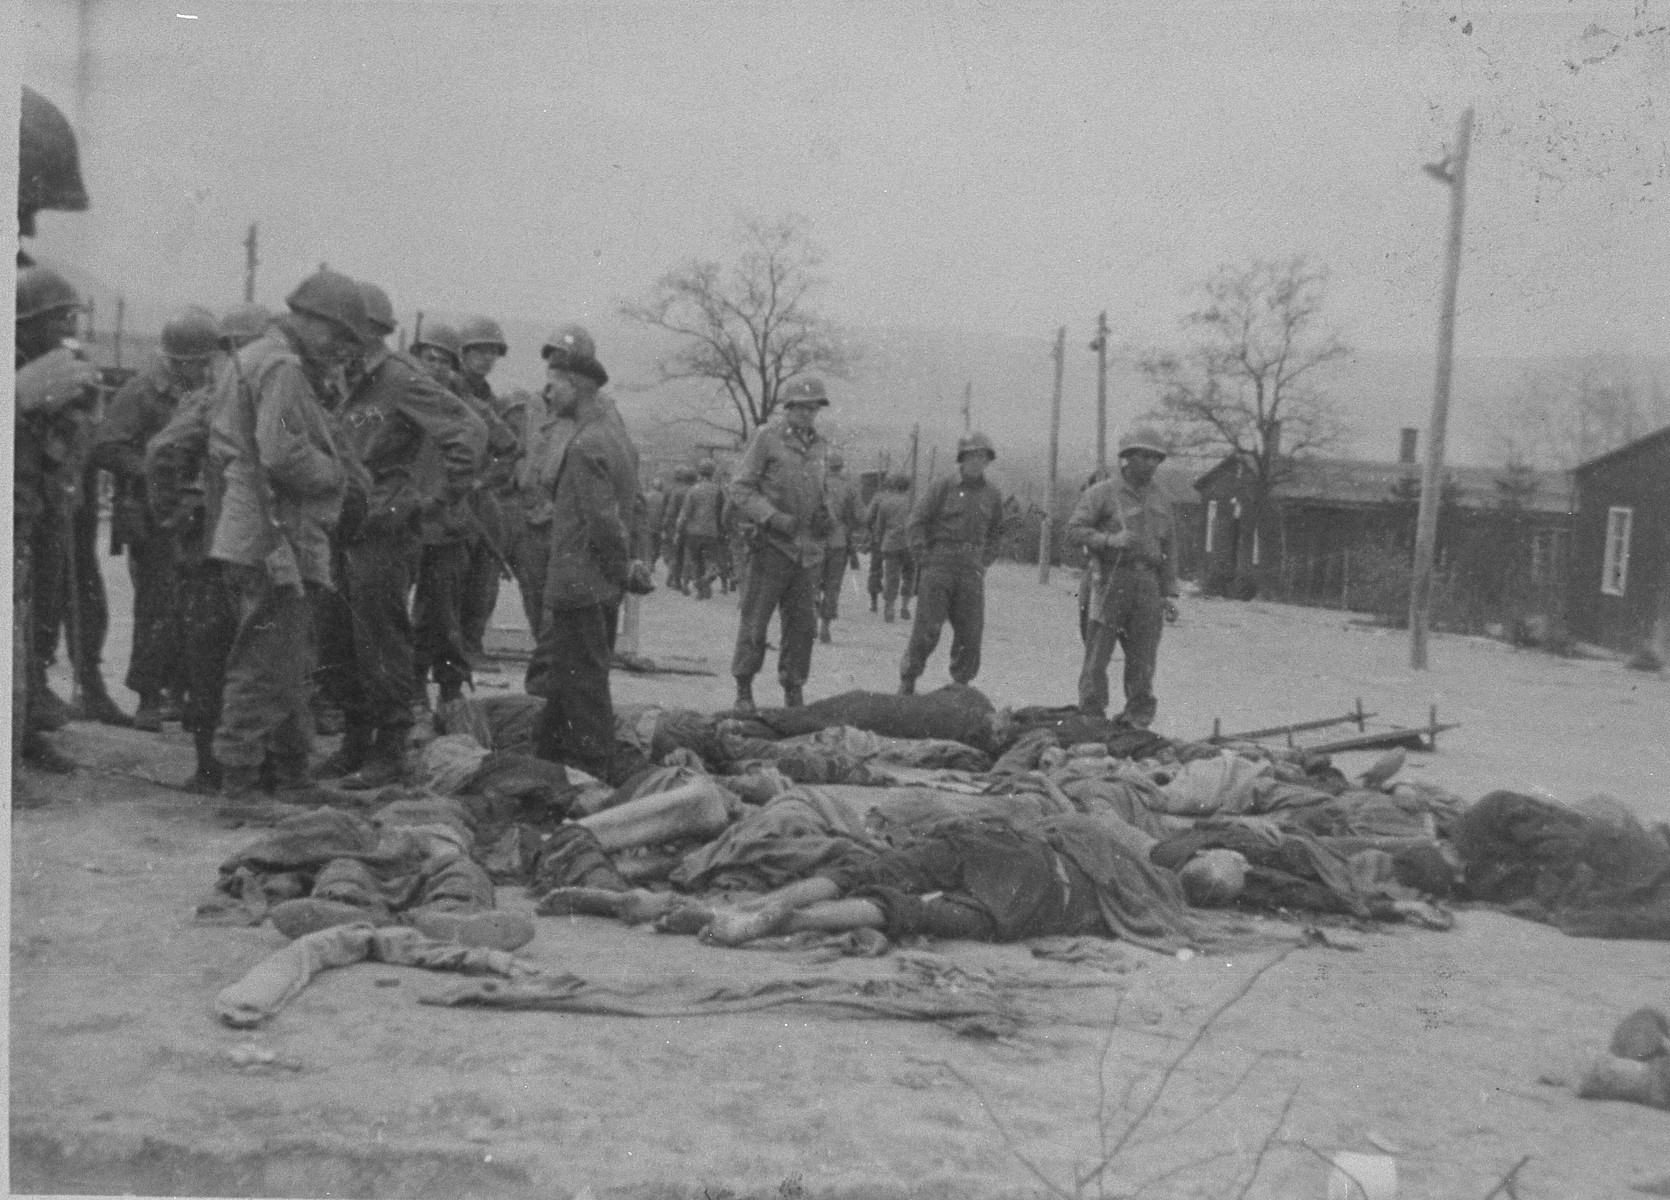 American soldiers view the bodies of prisoners shot by the SS during the evacuation of the Ohrdruf concentration camp.  The man second soldier from the right with his hands in his pockets has been identified as Willis E. Christ.